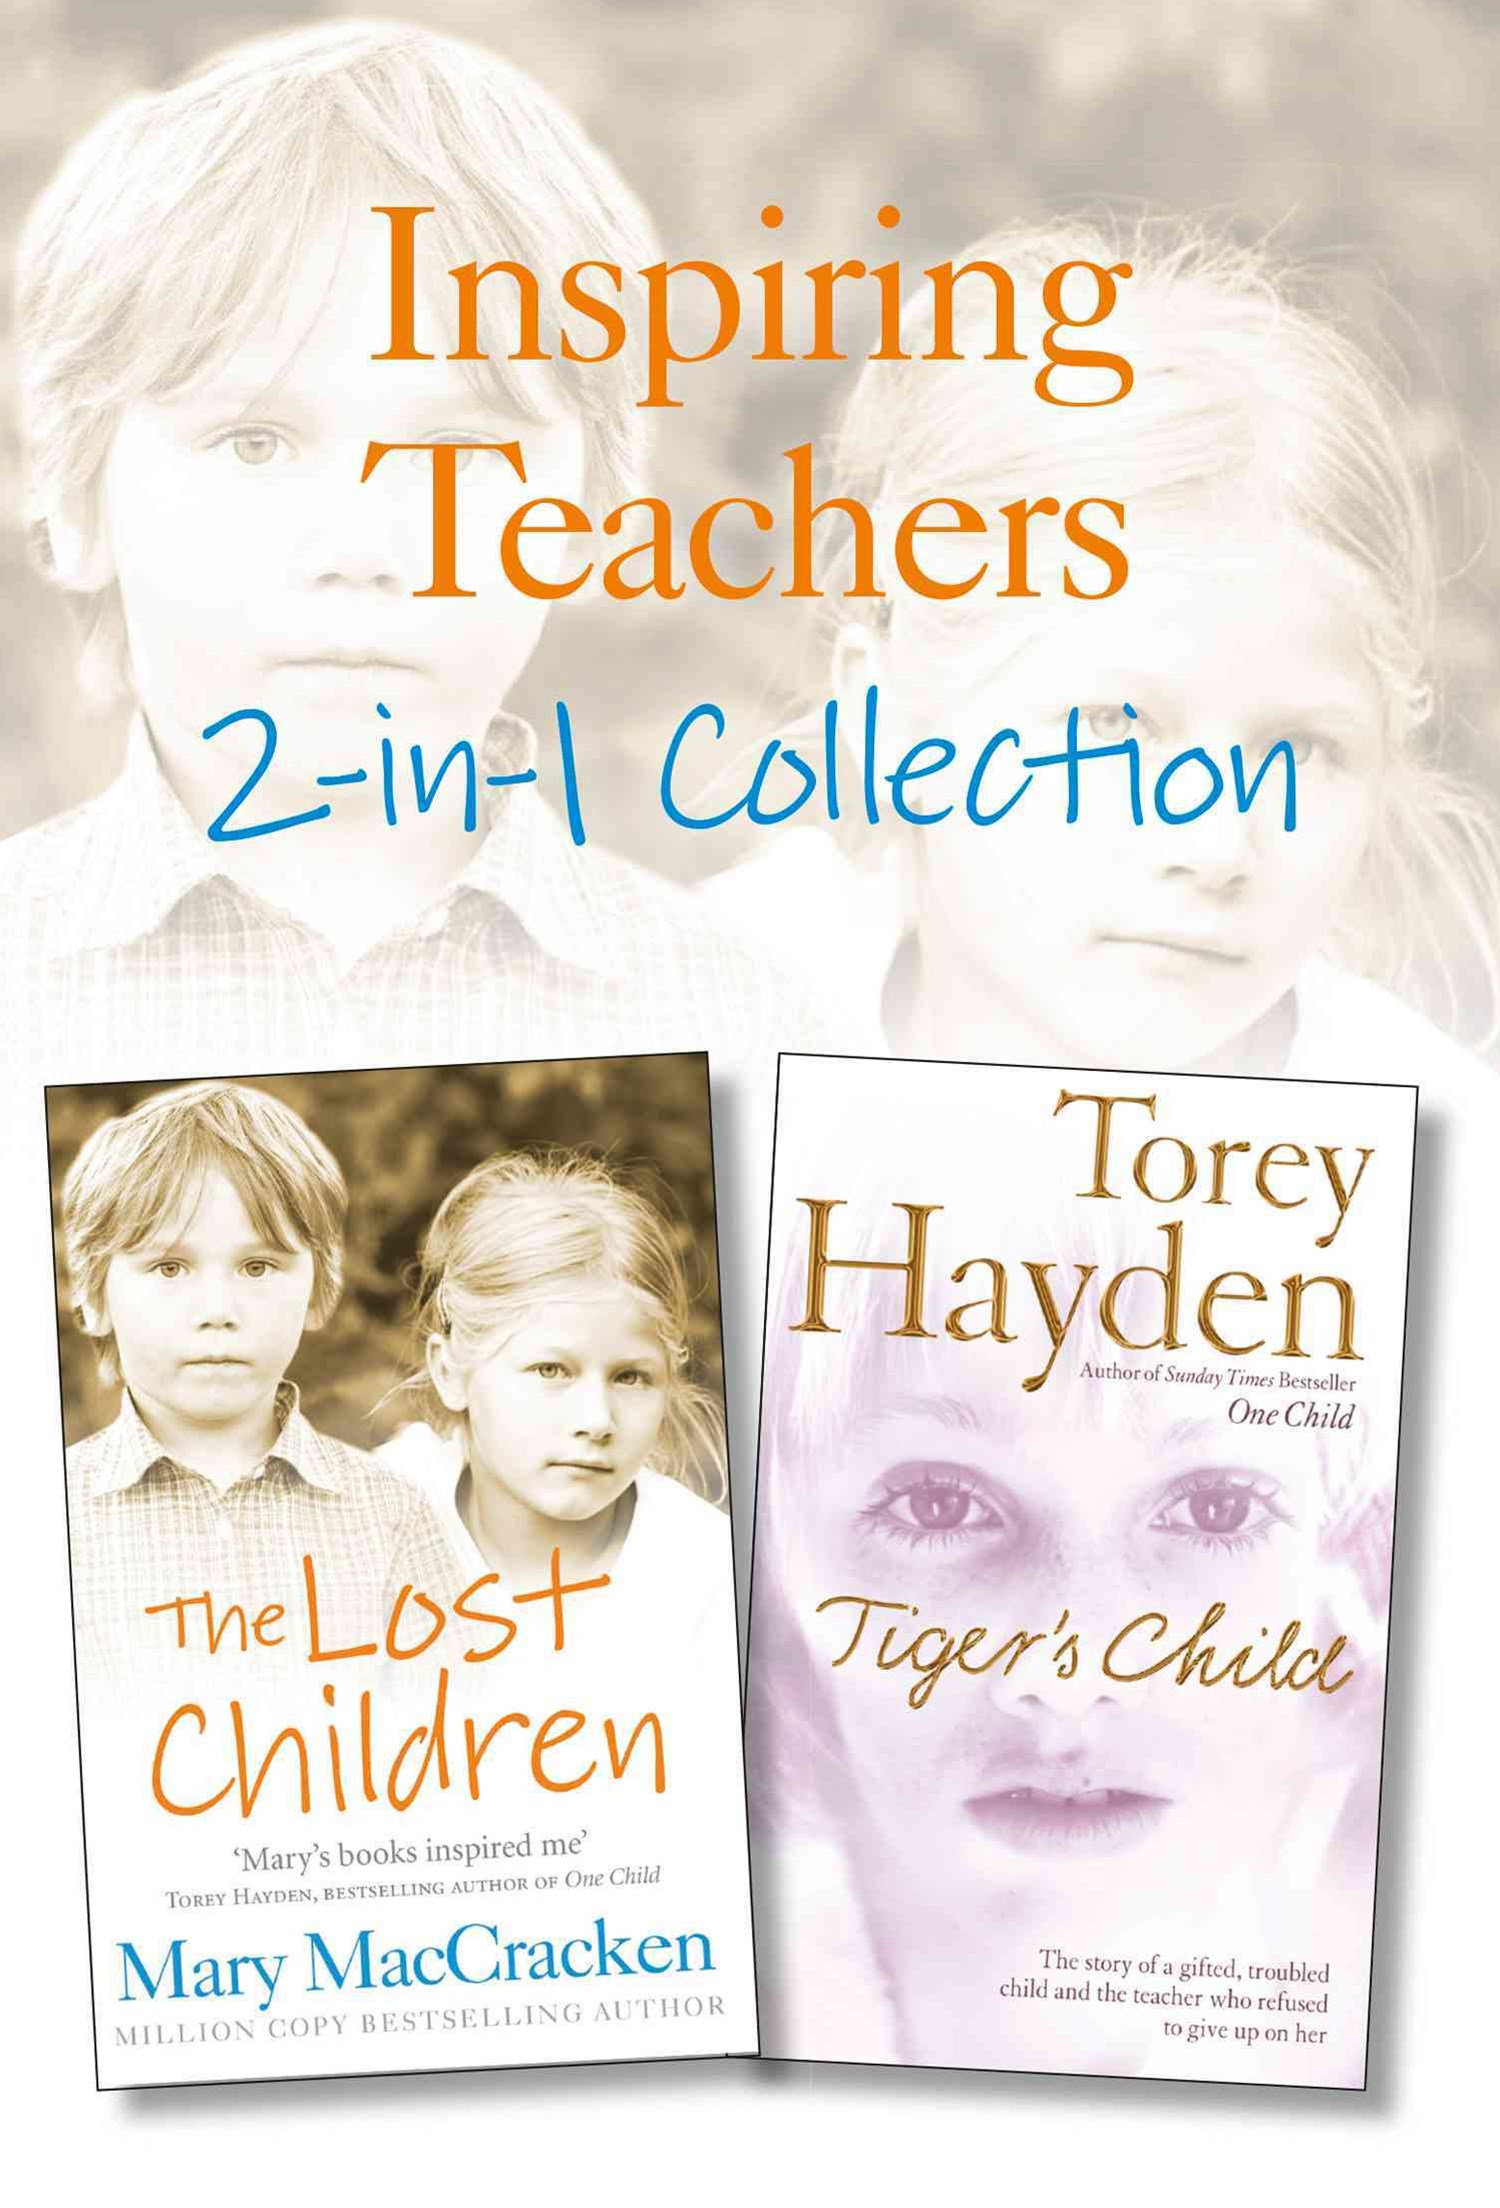 Inspiring Teachers 2-in-1 Collection